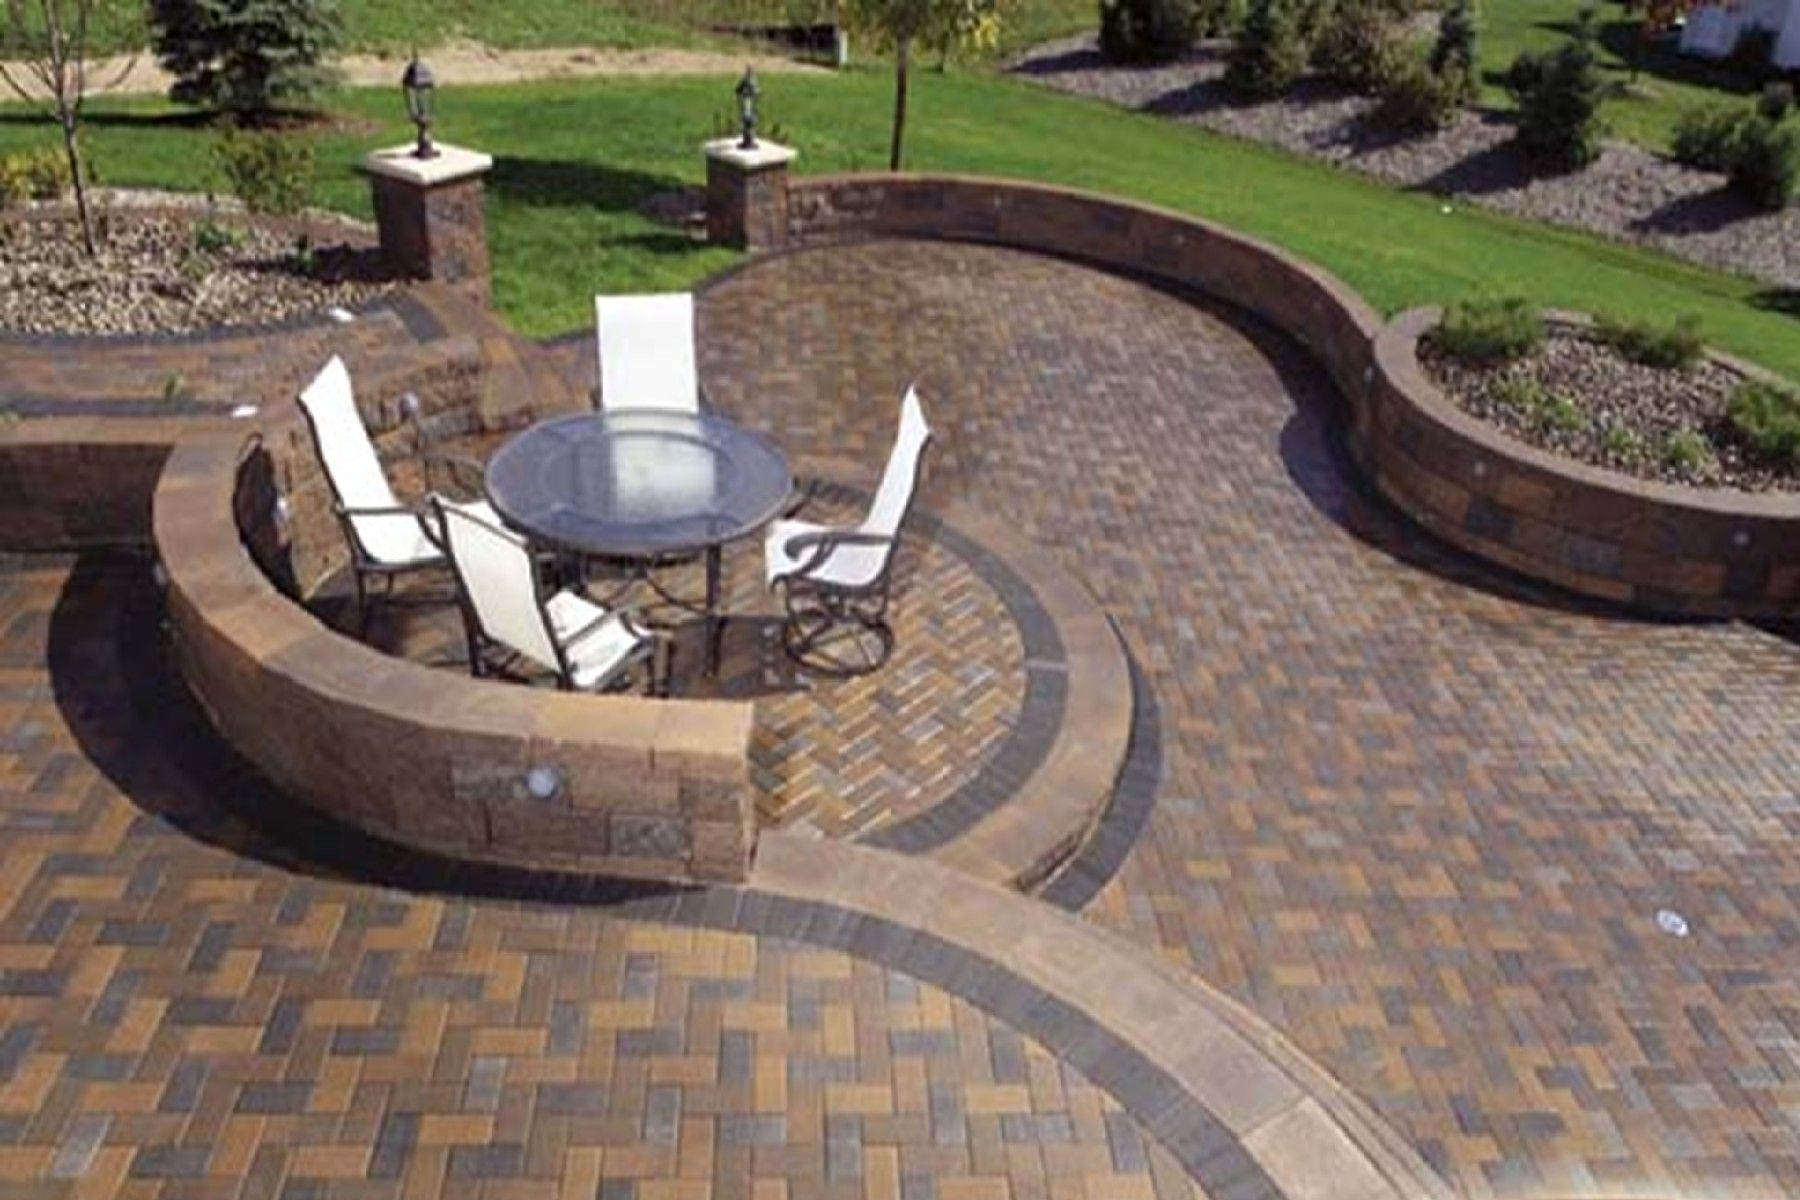 Stone Patio Ideas Backyard ideas patio outdoor living patio pavers san diego gorgeous backyard patio paver area perfect paver Patio Designs Tampa St Pete Clearwater Paver Designs